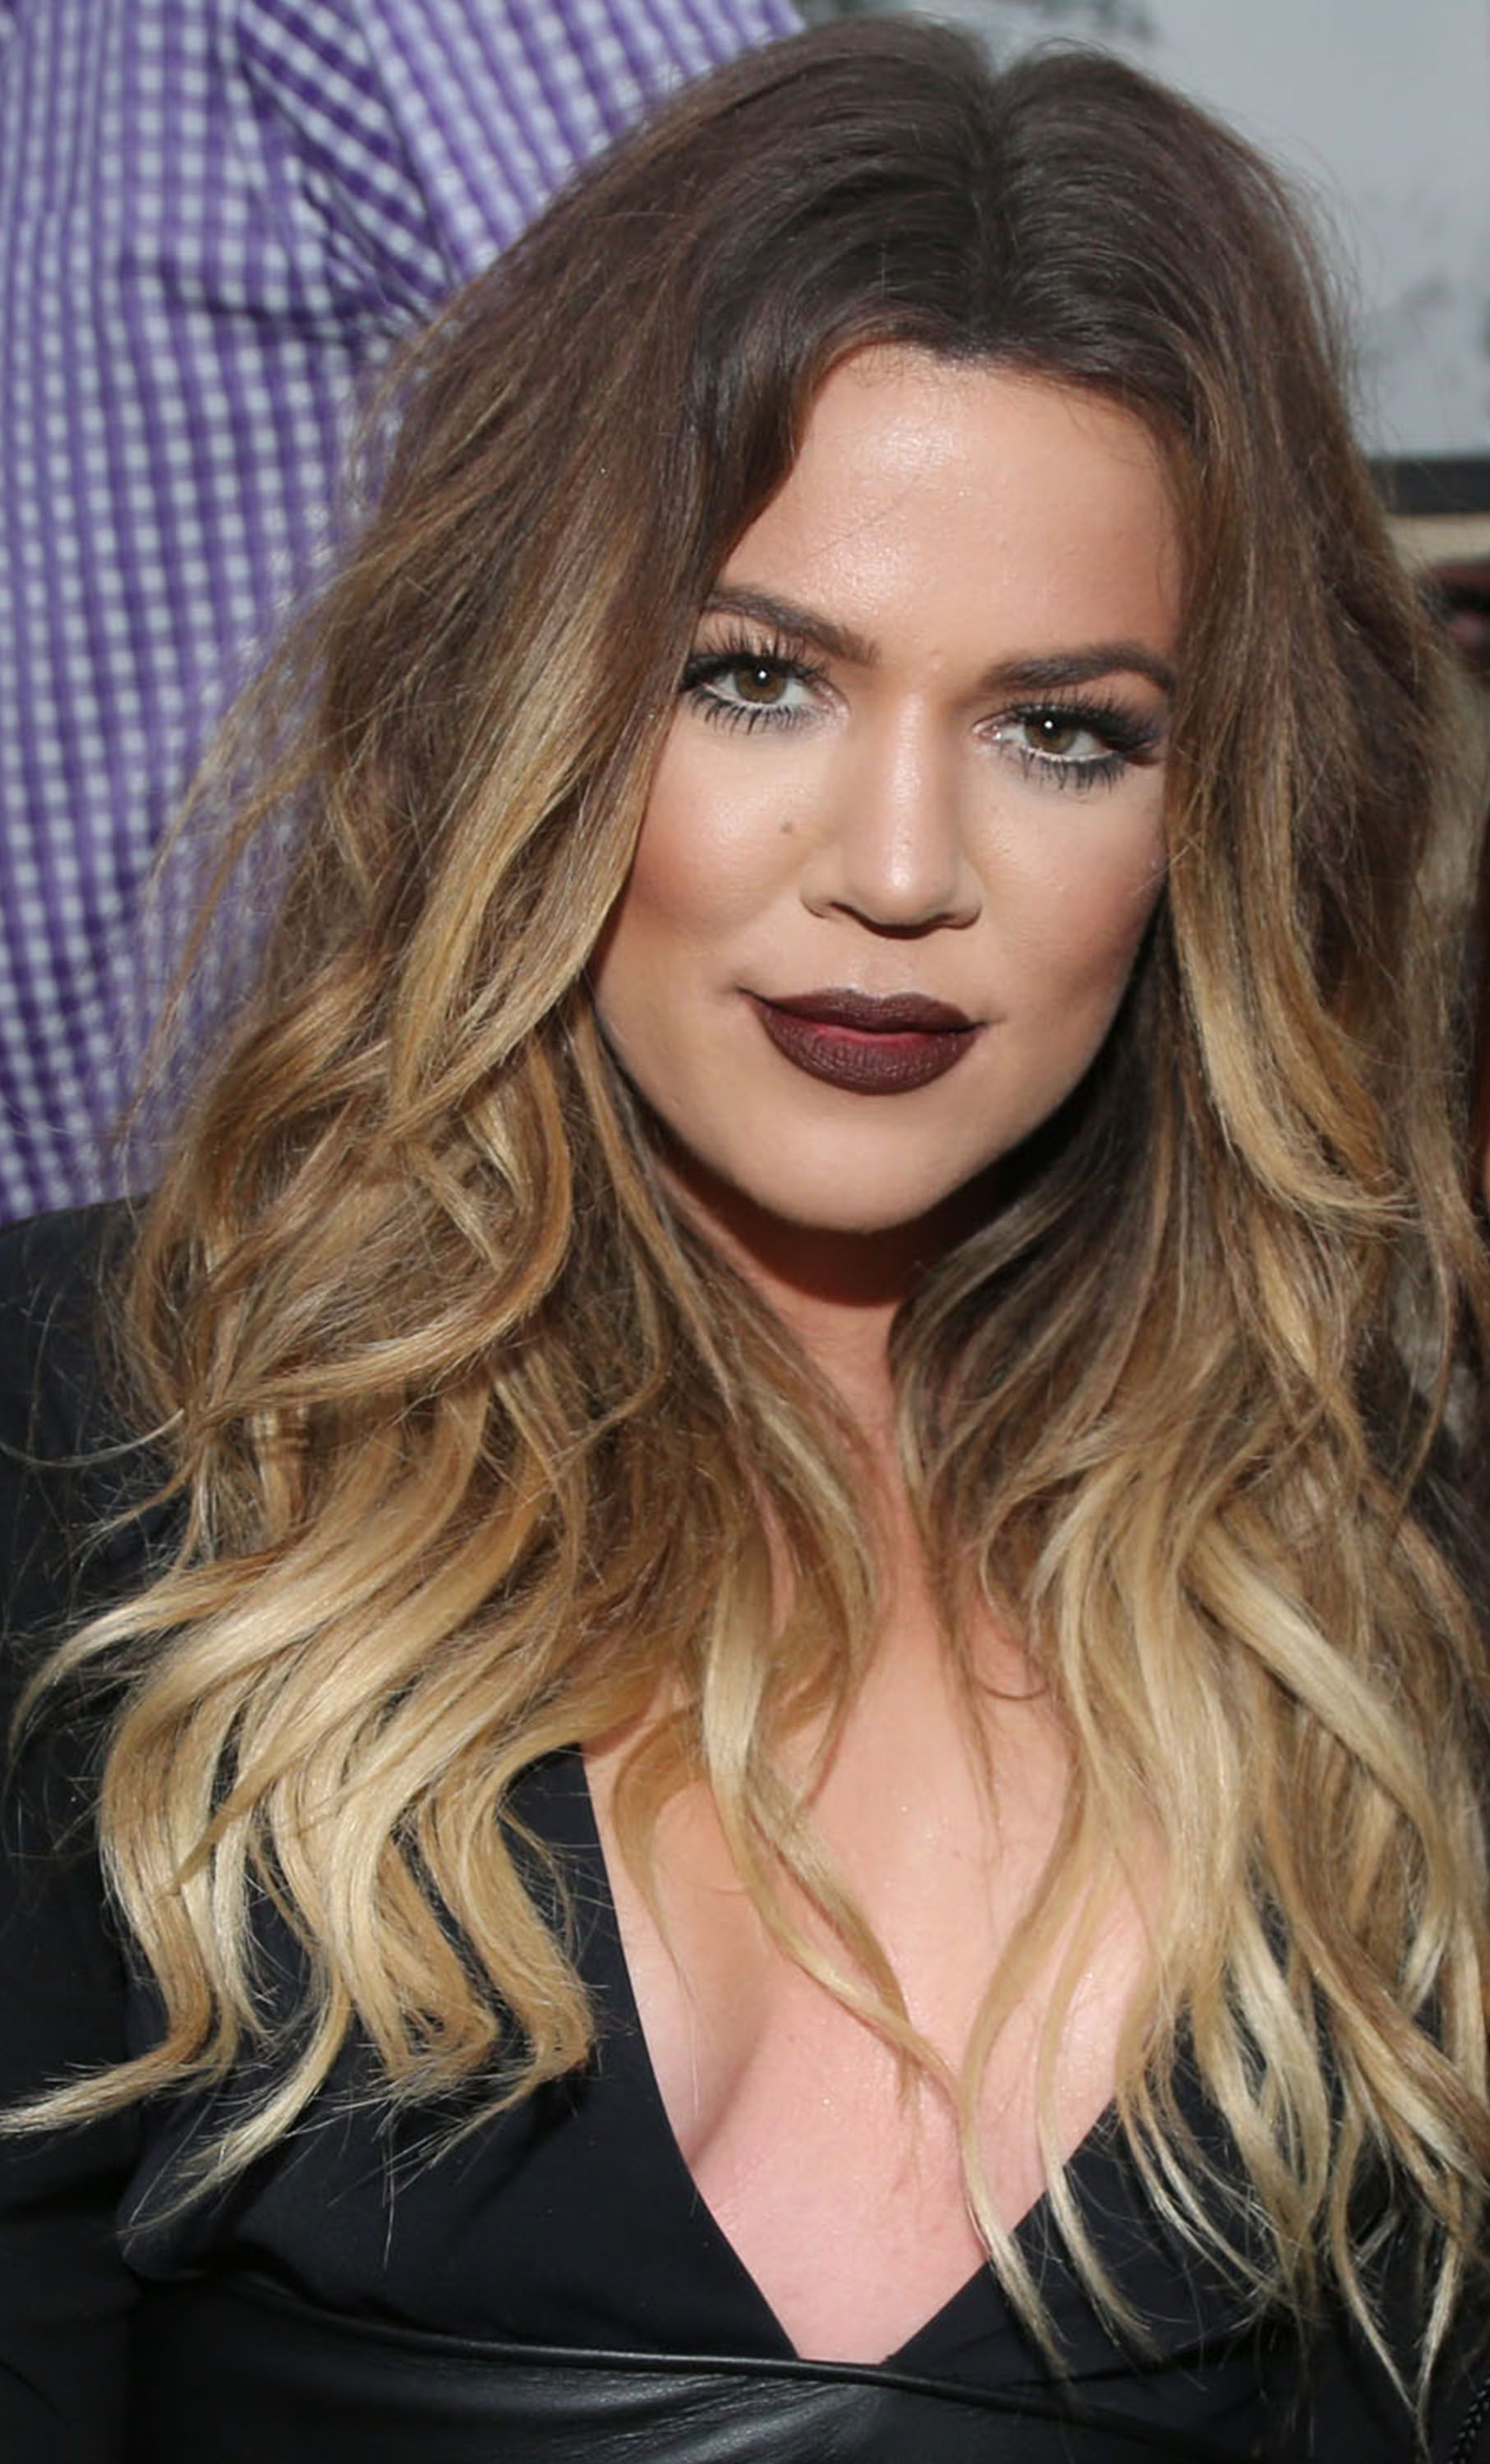 30 best hair highlights for 2017 every style and type of hair 30 best hair highlights for 2017 every style and type of hair highlights pmusecretfo Choice Image